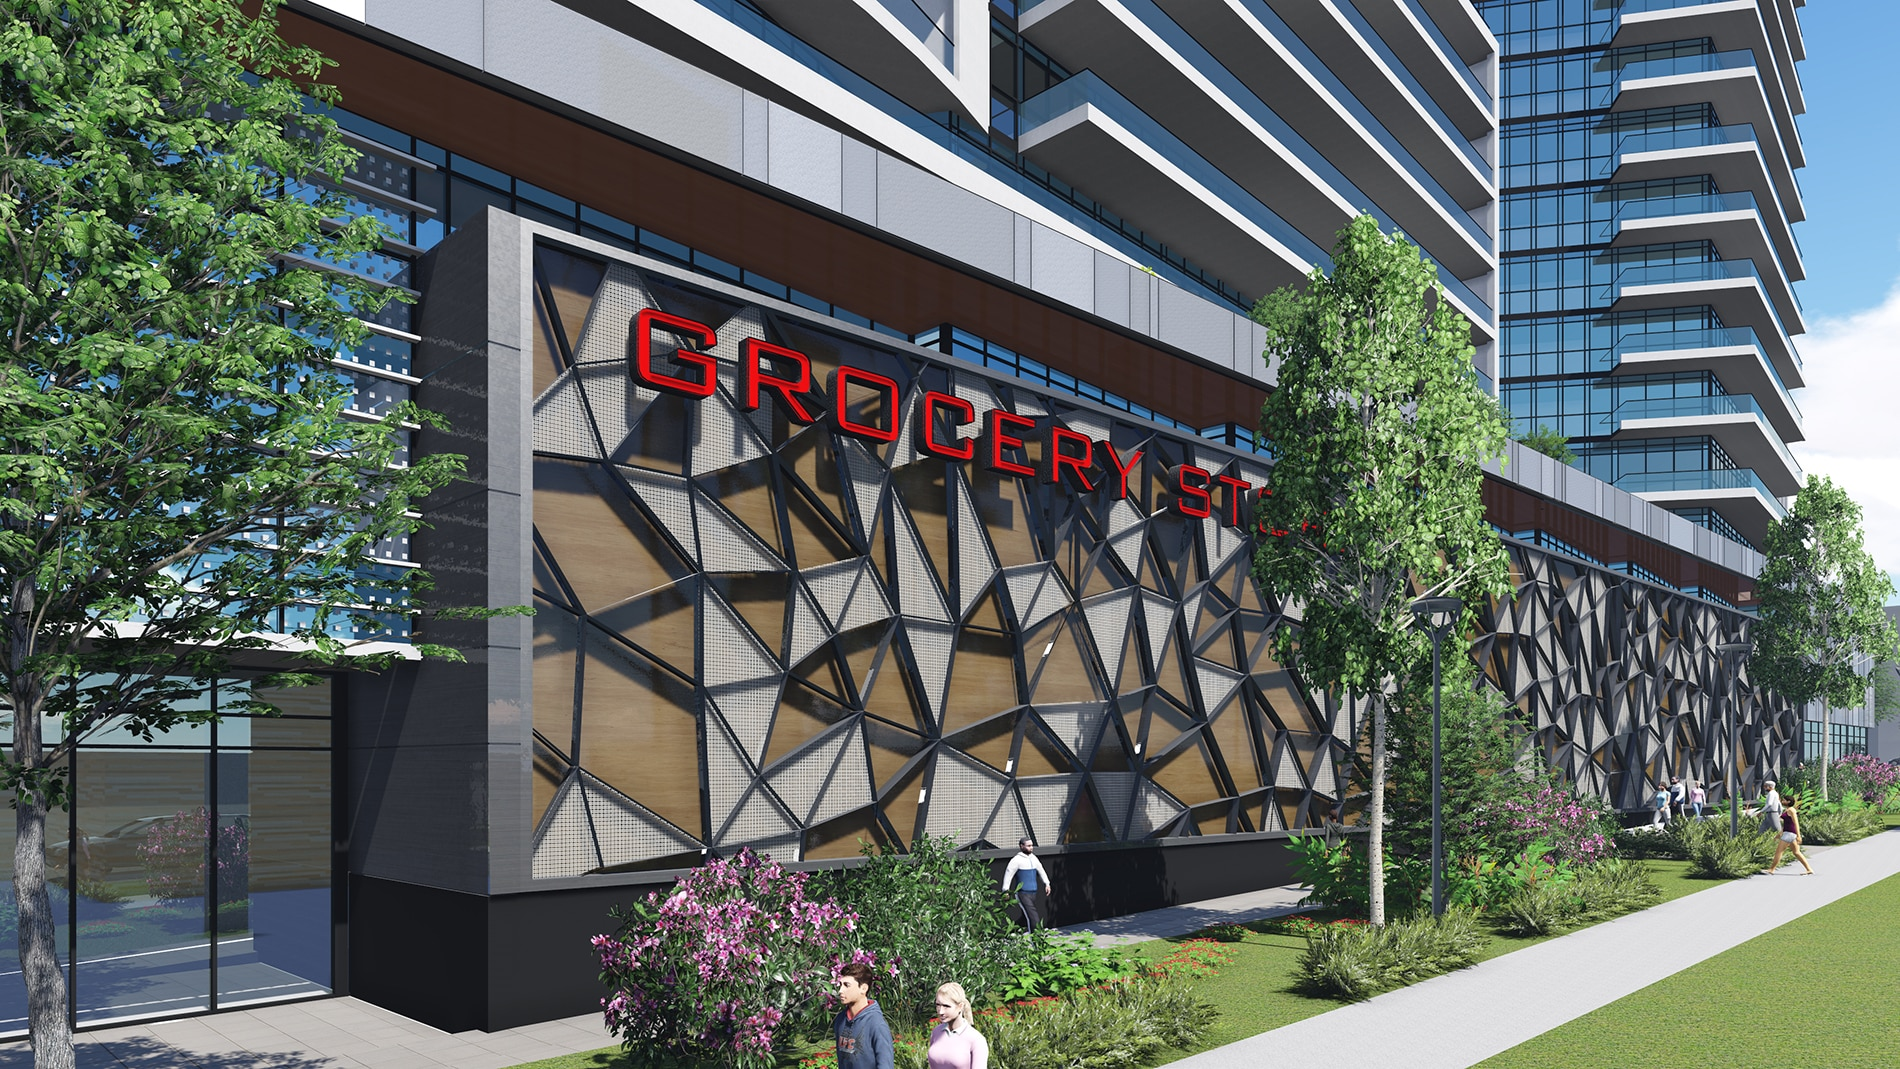 Gemma Condos at Pinnacle Uptown in Square One gemma condos mississauga square one pinnacle international for sale